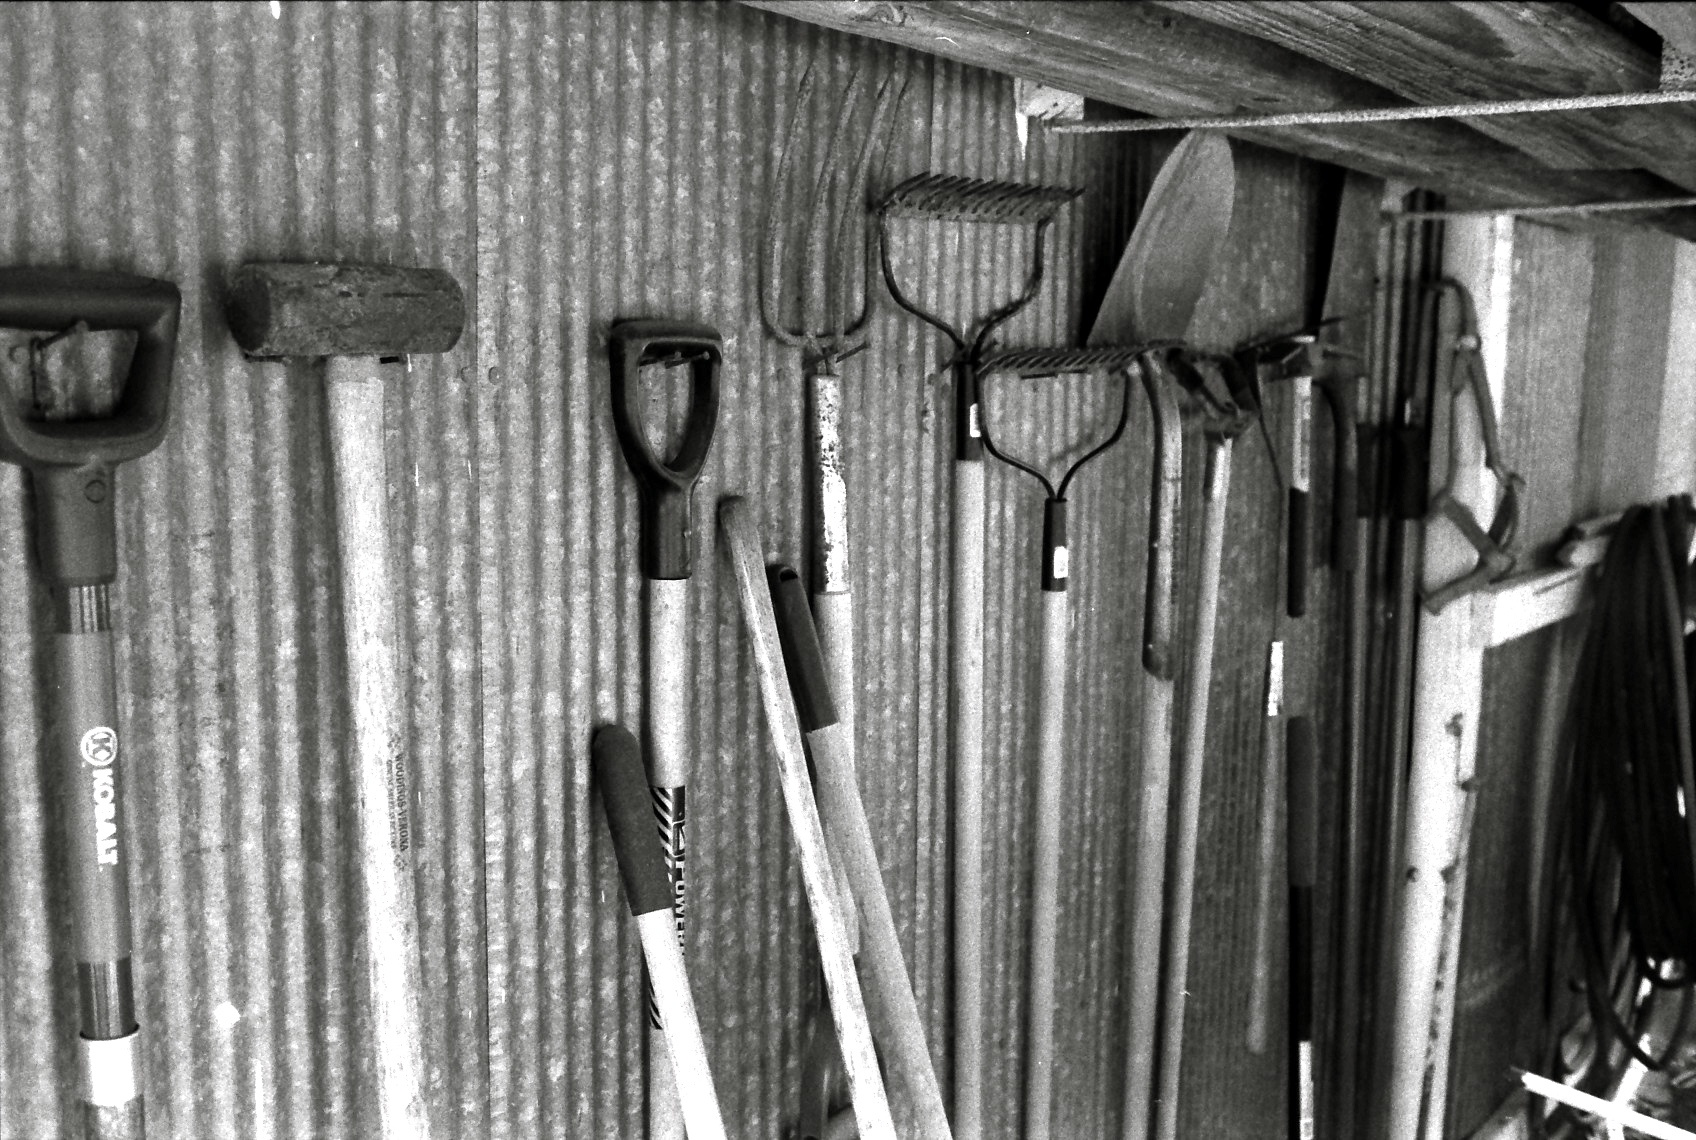 Get your garden shed organised for summer owatrol direct for Important gardening tools